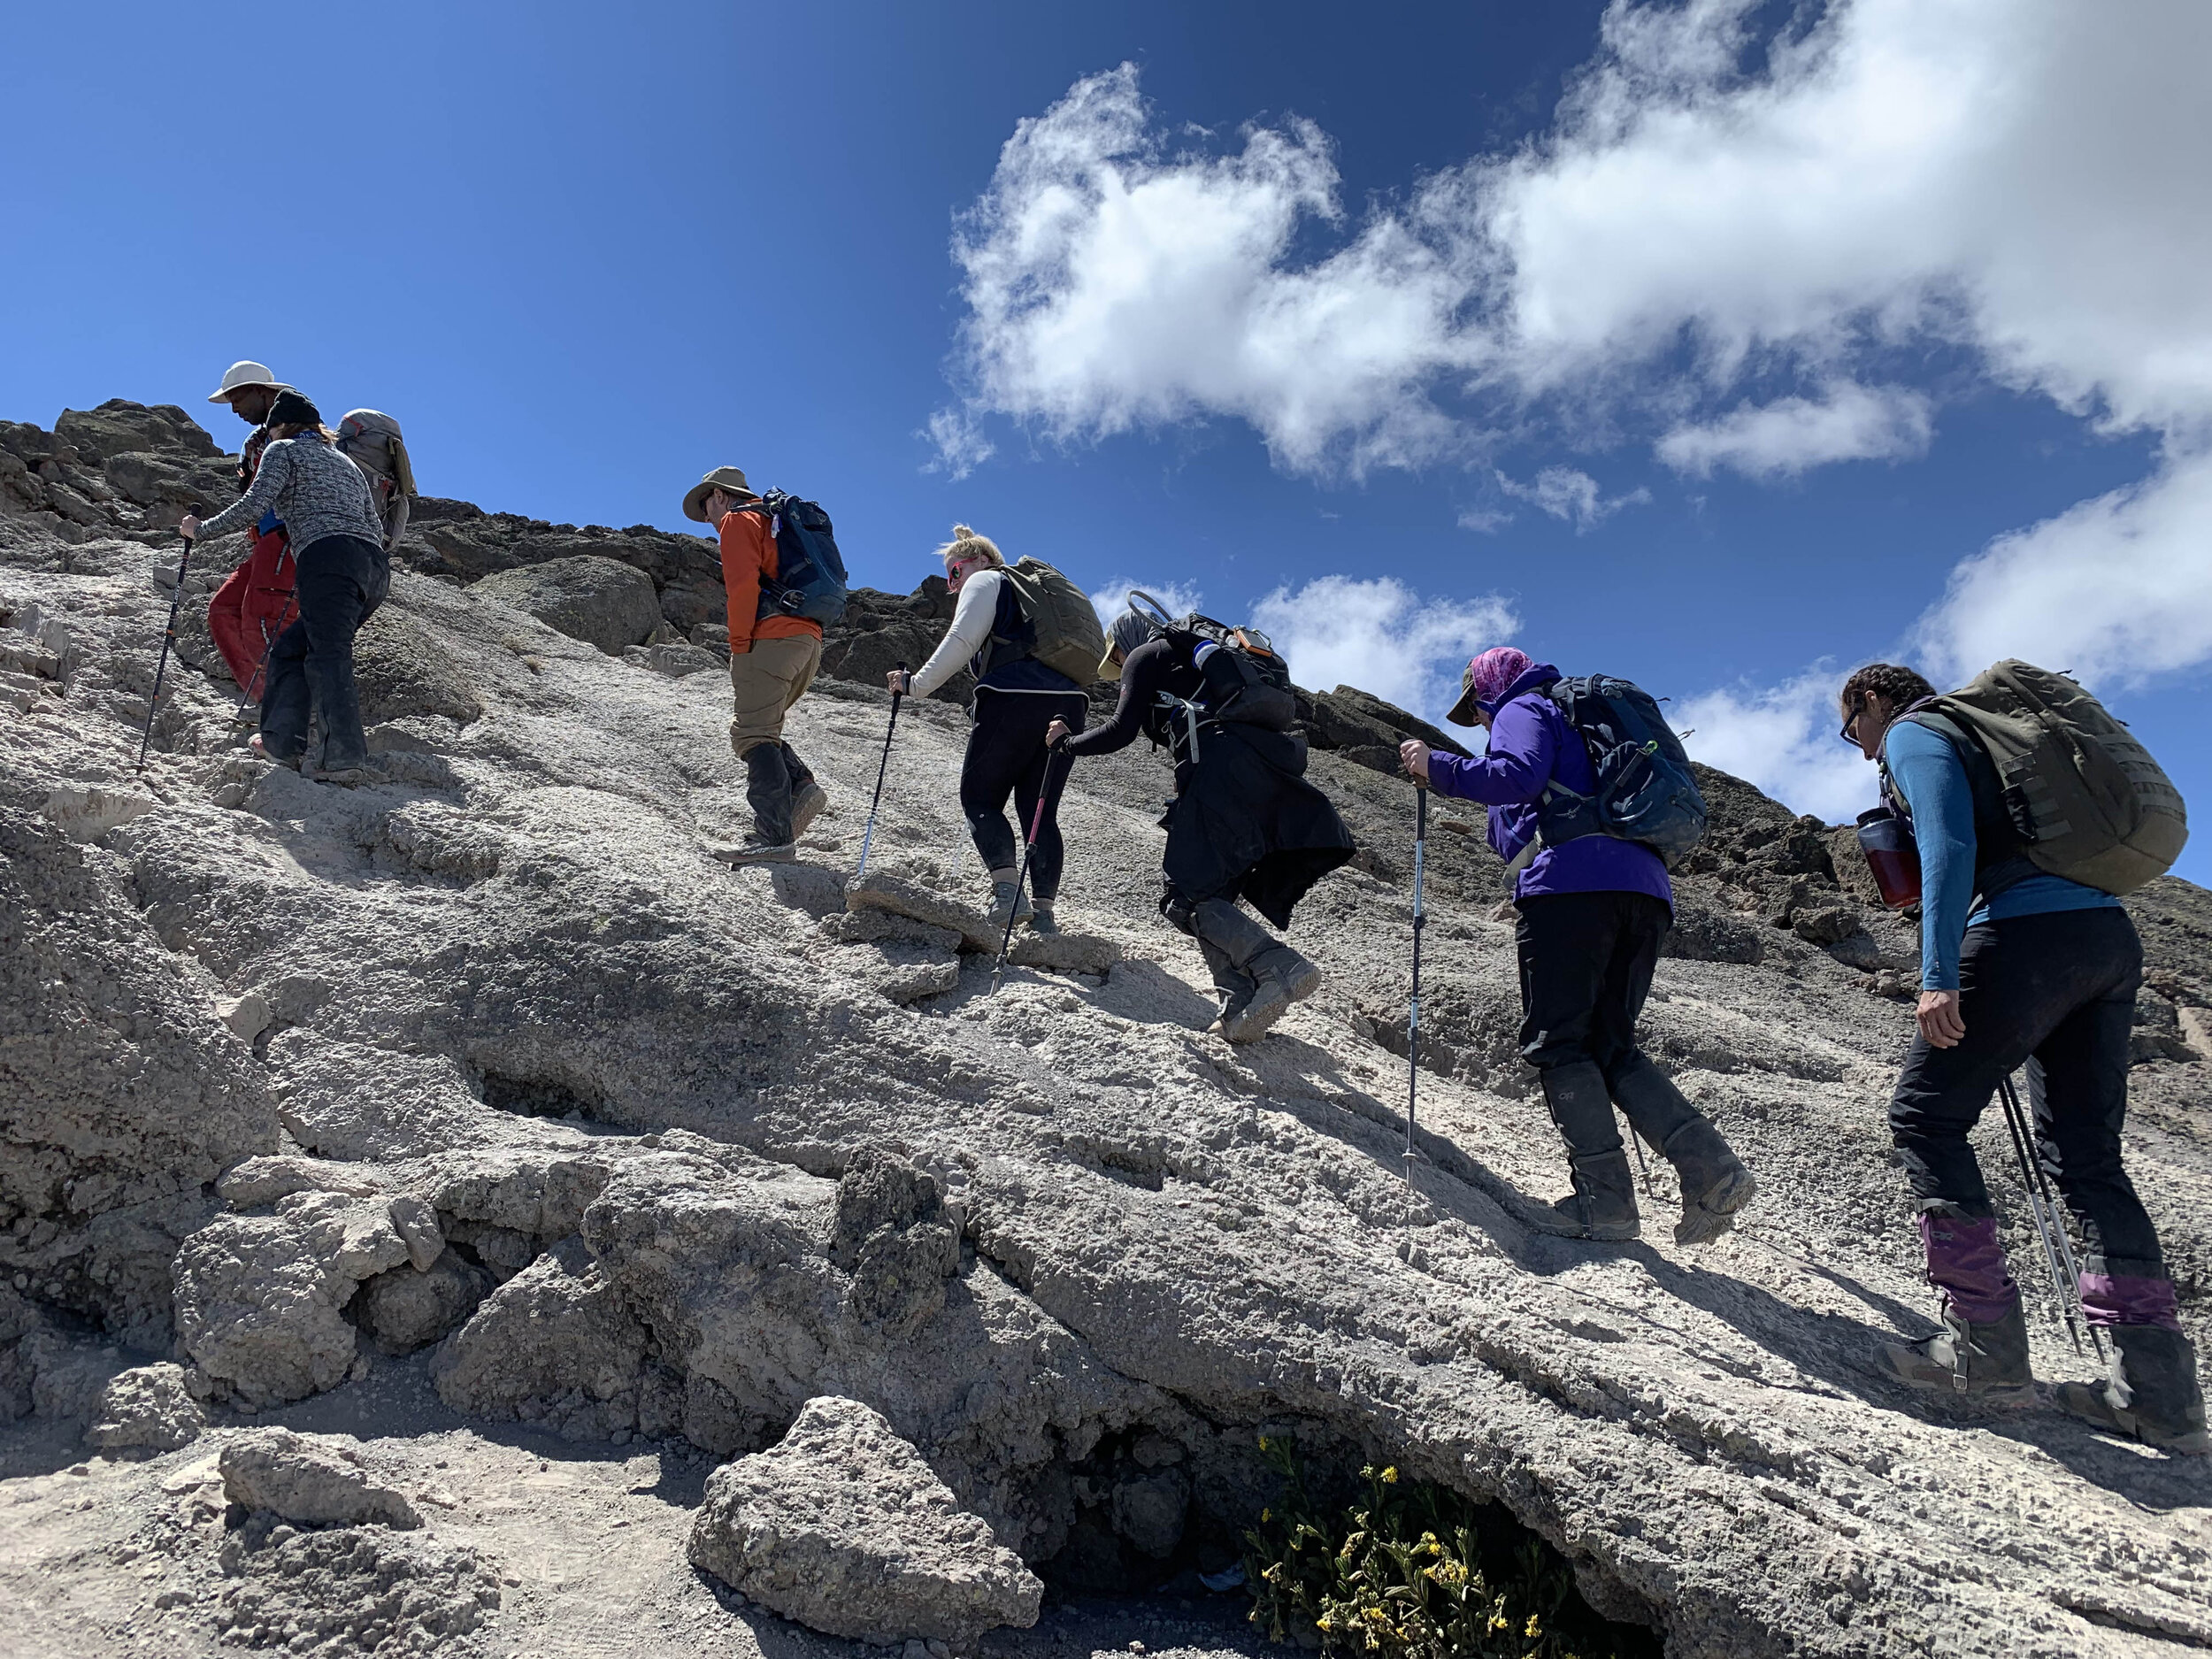 At 16,000 feet elevation, Deirdre Smith, Dr. Malcolm Smith, Ann Mancheski, Dr. Jennifer Thompson, Cheryl Kite and Melinda Krueger hike with their guide from Barafu Camp to Kosovo Camp, the day before summit day.